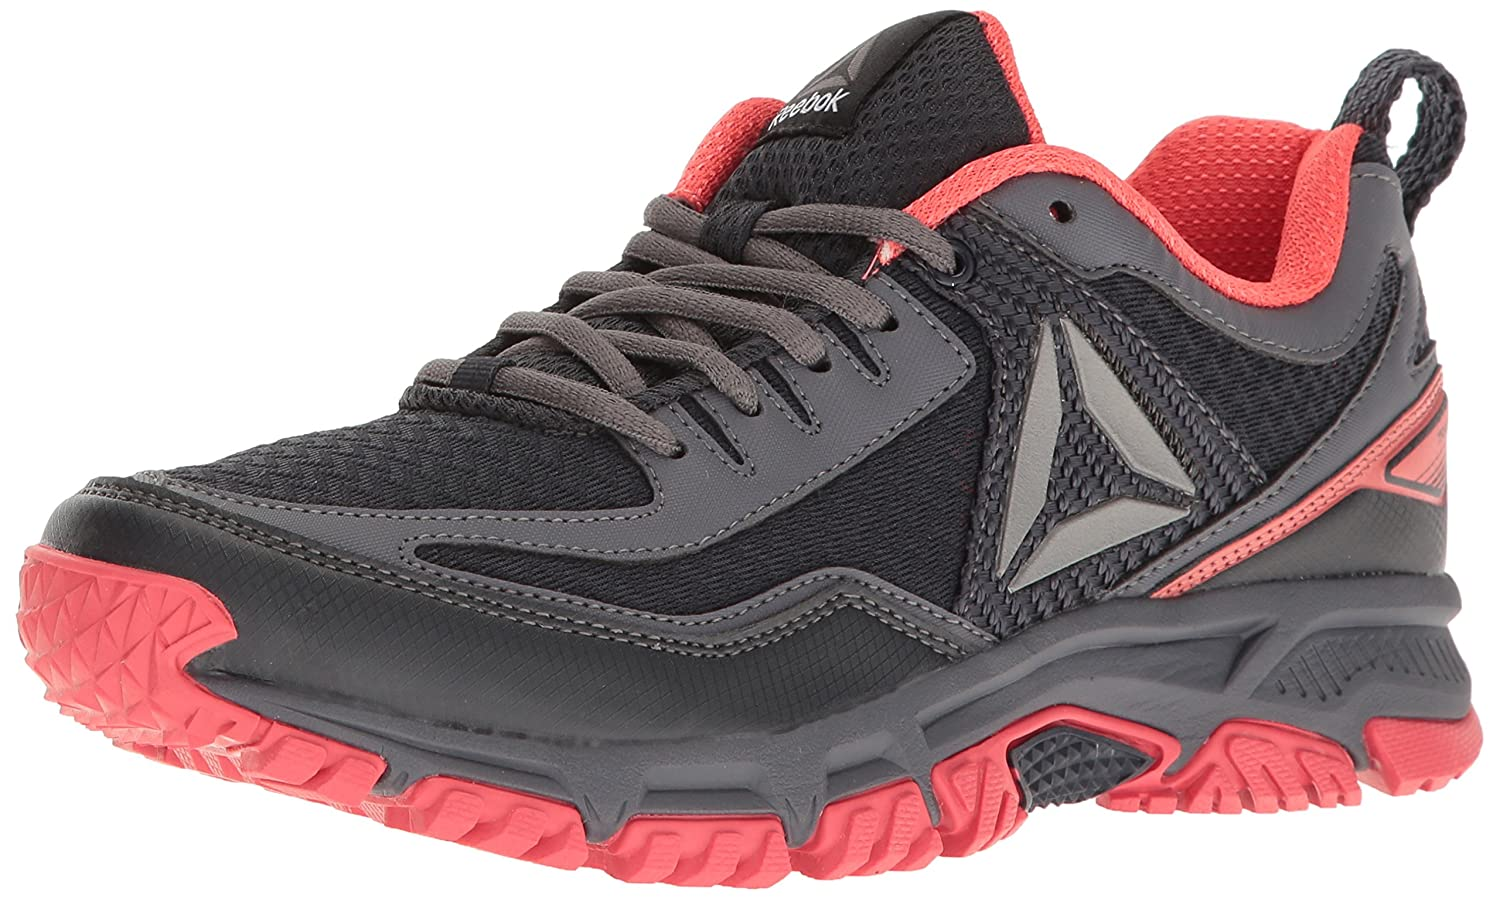 Reebok Women's Ridgerider 2.0 Trail Runner B01I0CASCE 5 M US|Lead/Fire Coral/Ash Grey/Pewter